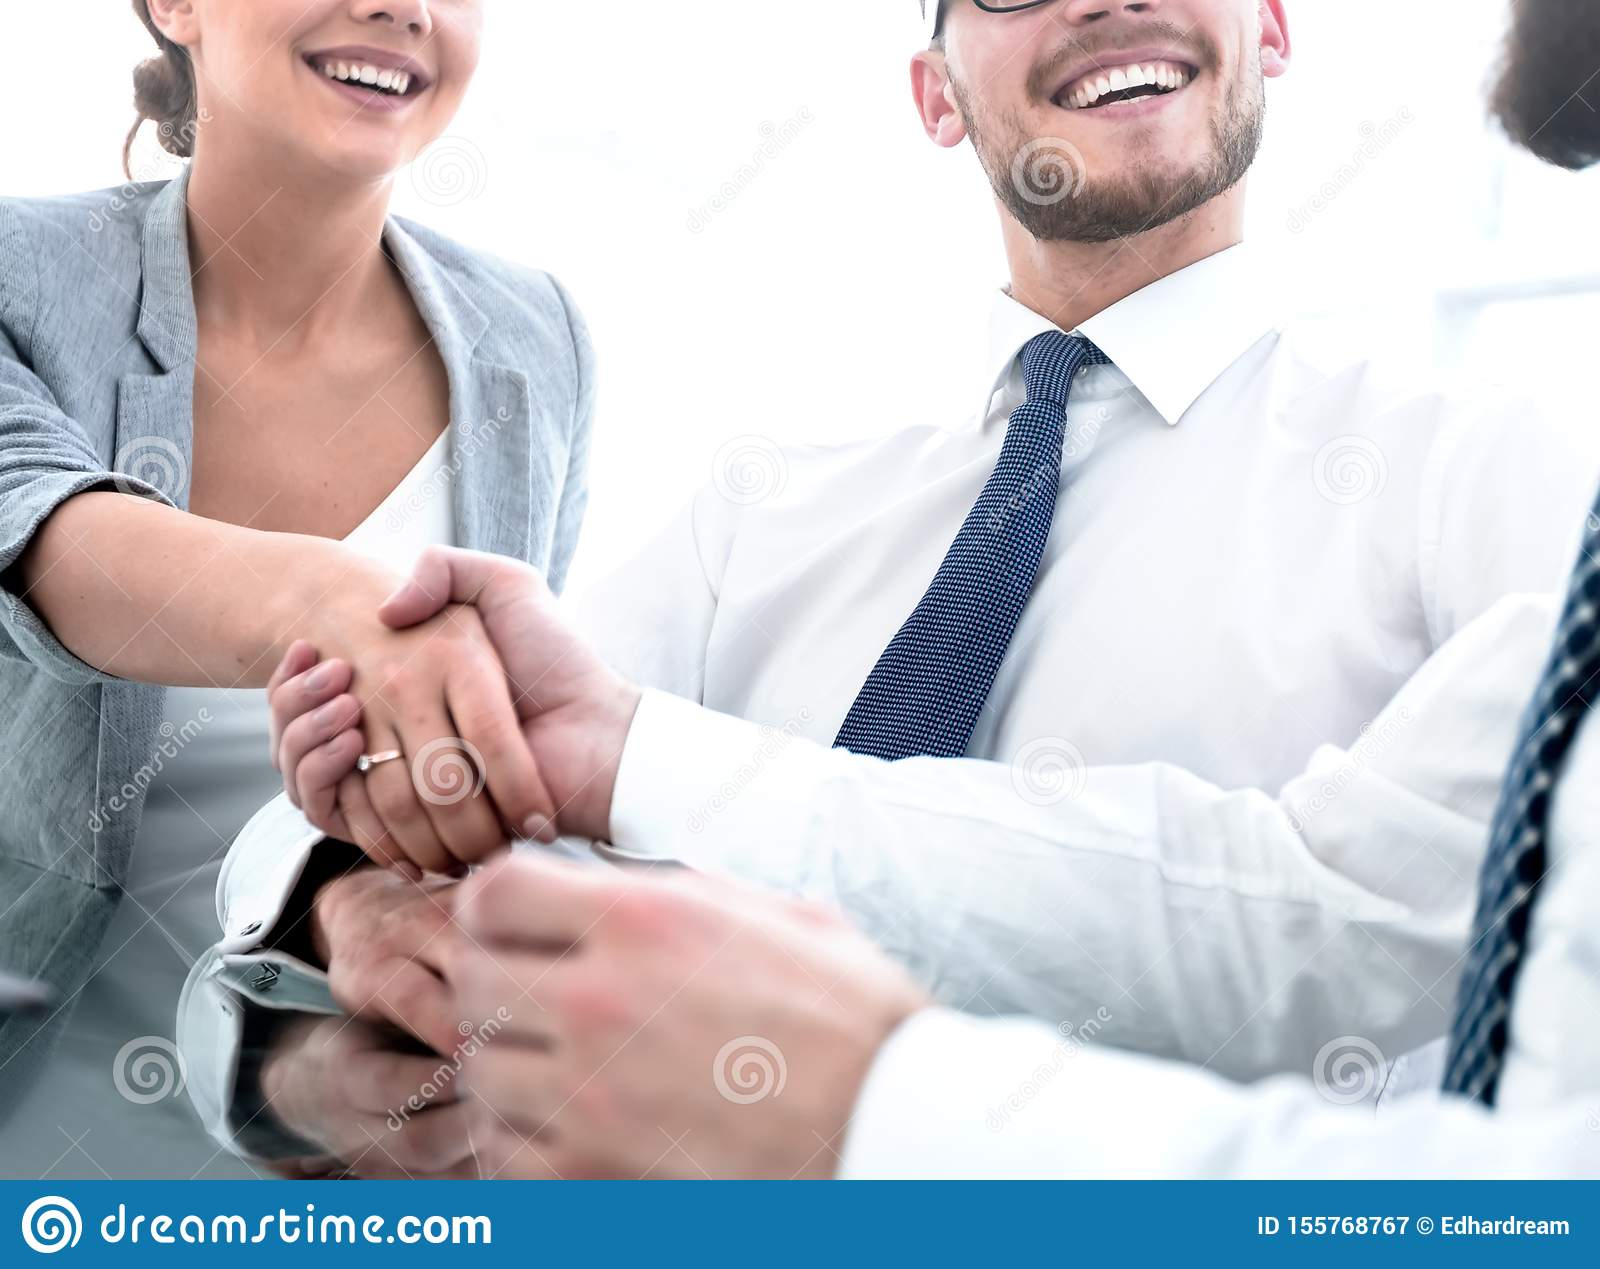 Background image.handshakes colleagues at the Desk